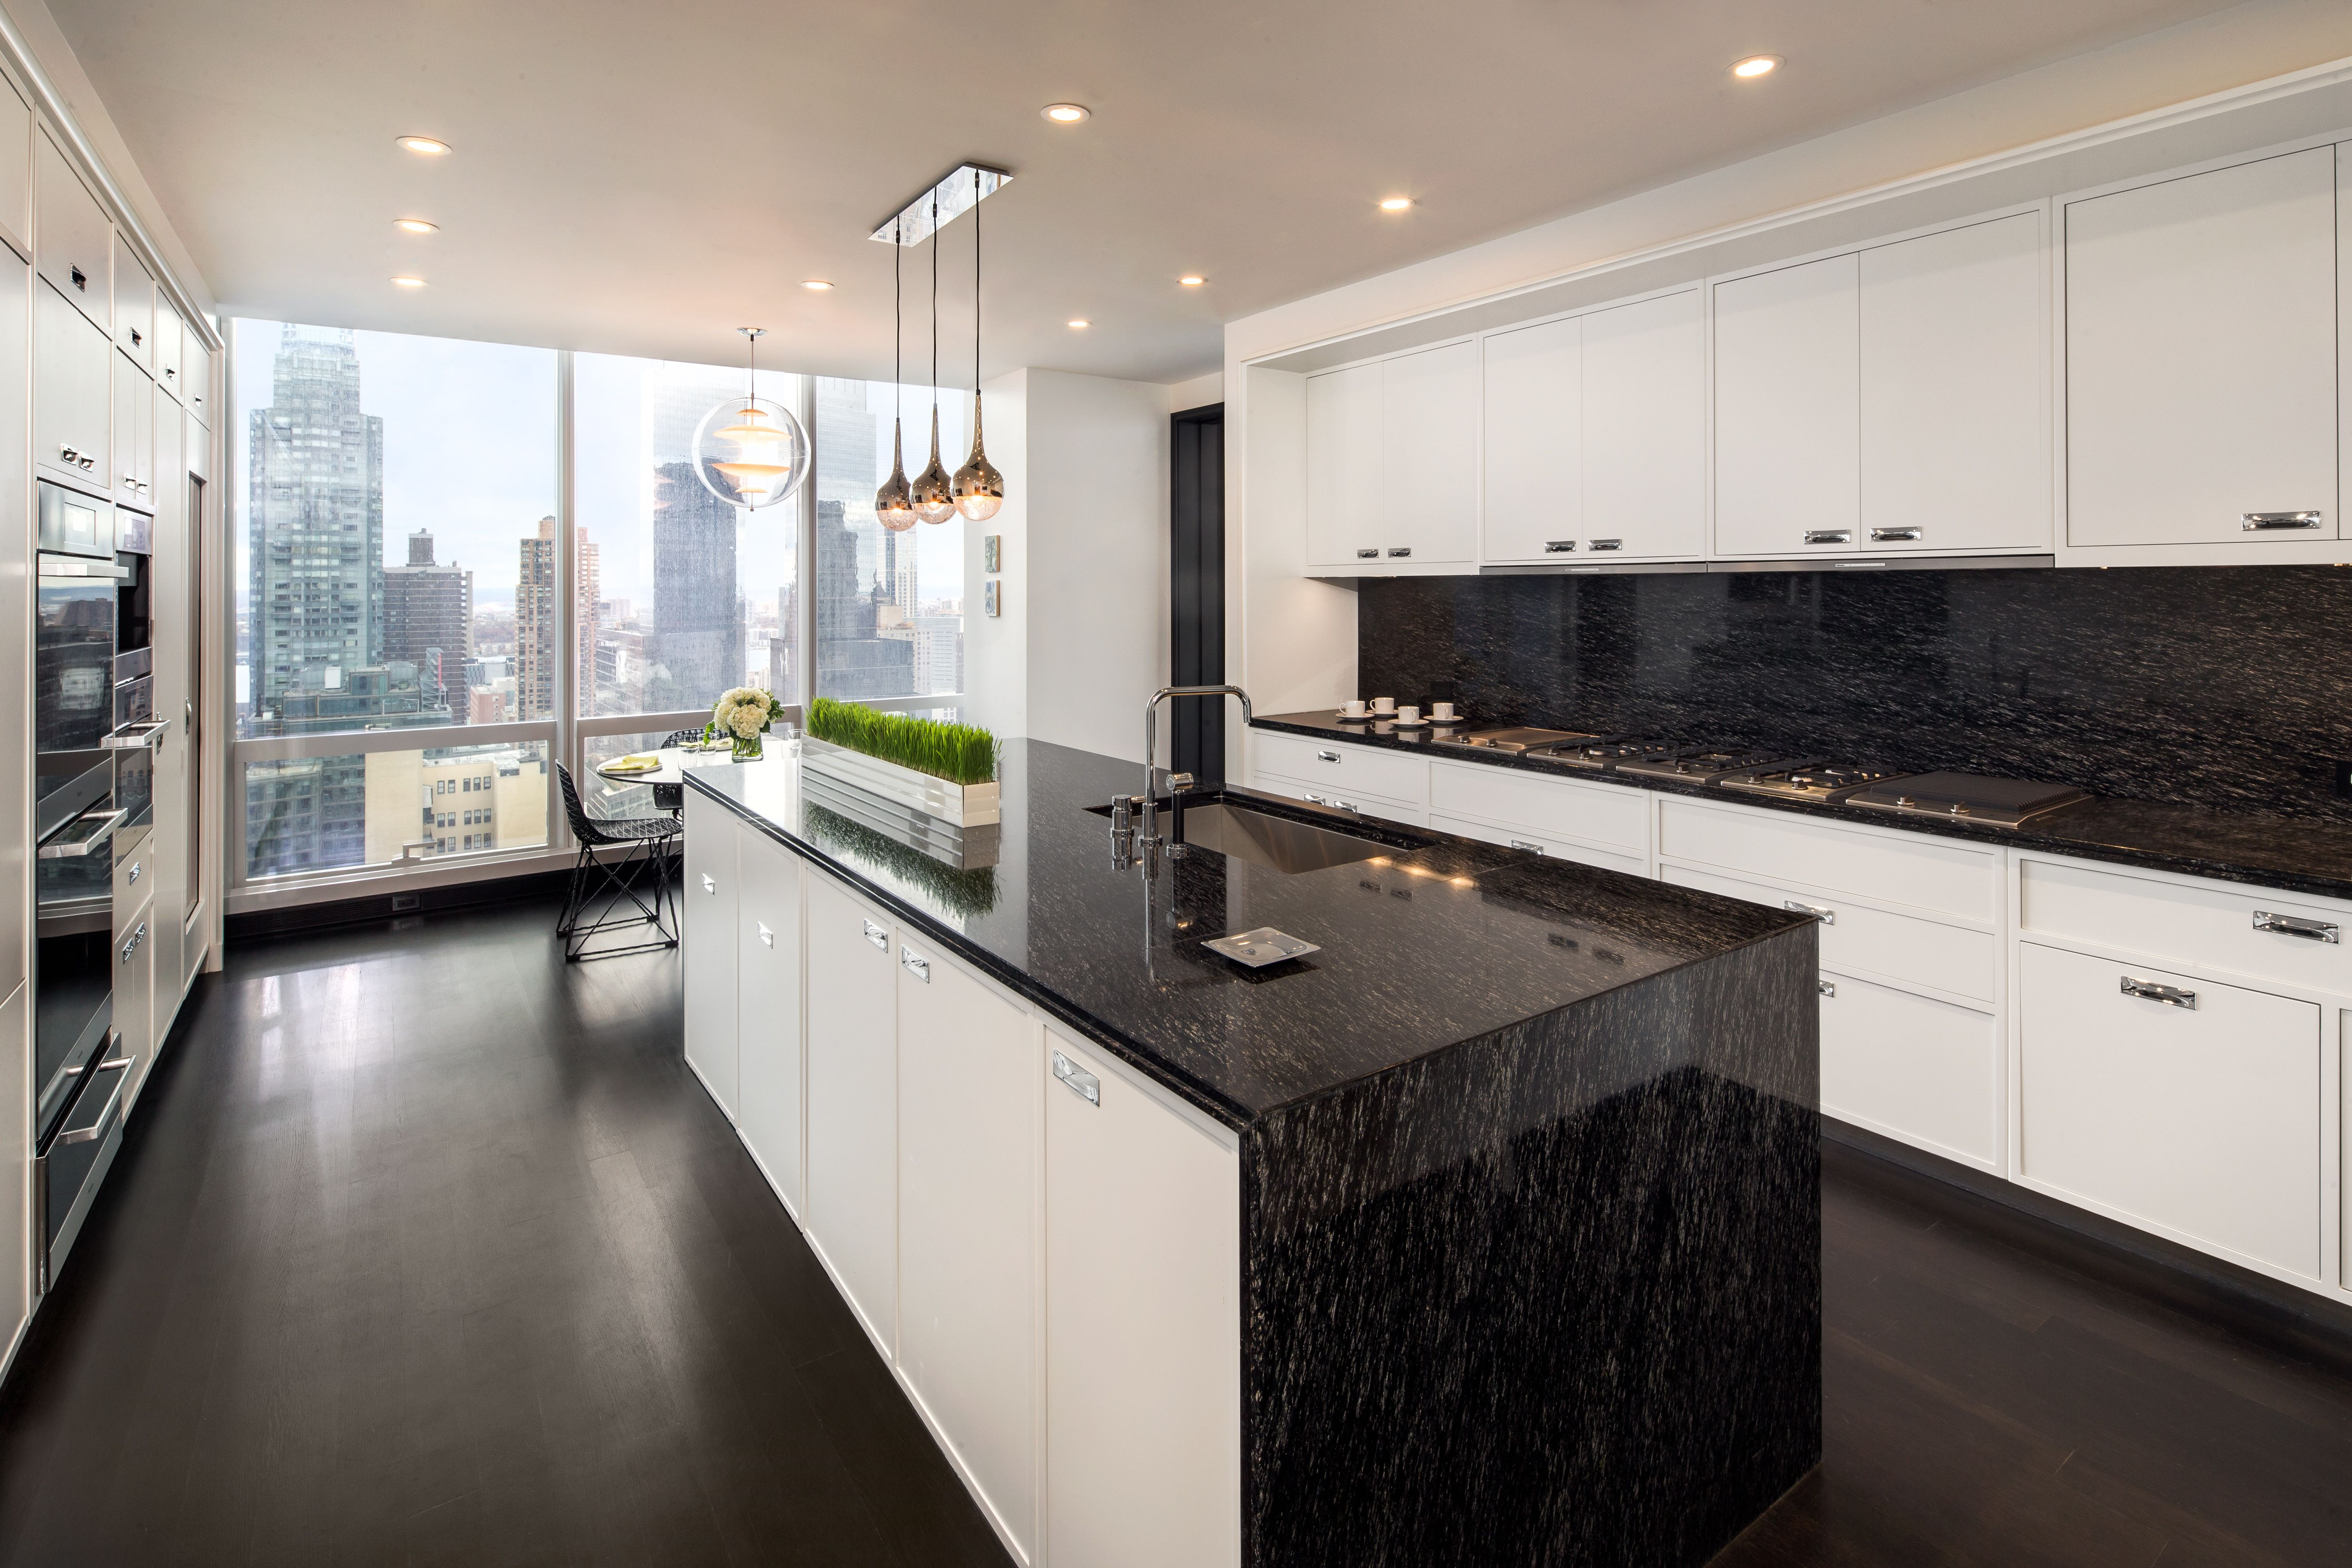 Luxurious Kitchen In One57 Condo Project In New York City One57kitchen Farmhouse Kitchen Design Kitchen Design Small Luxury Kitchen Cabinets